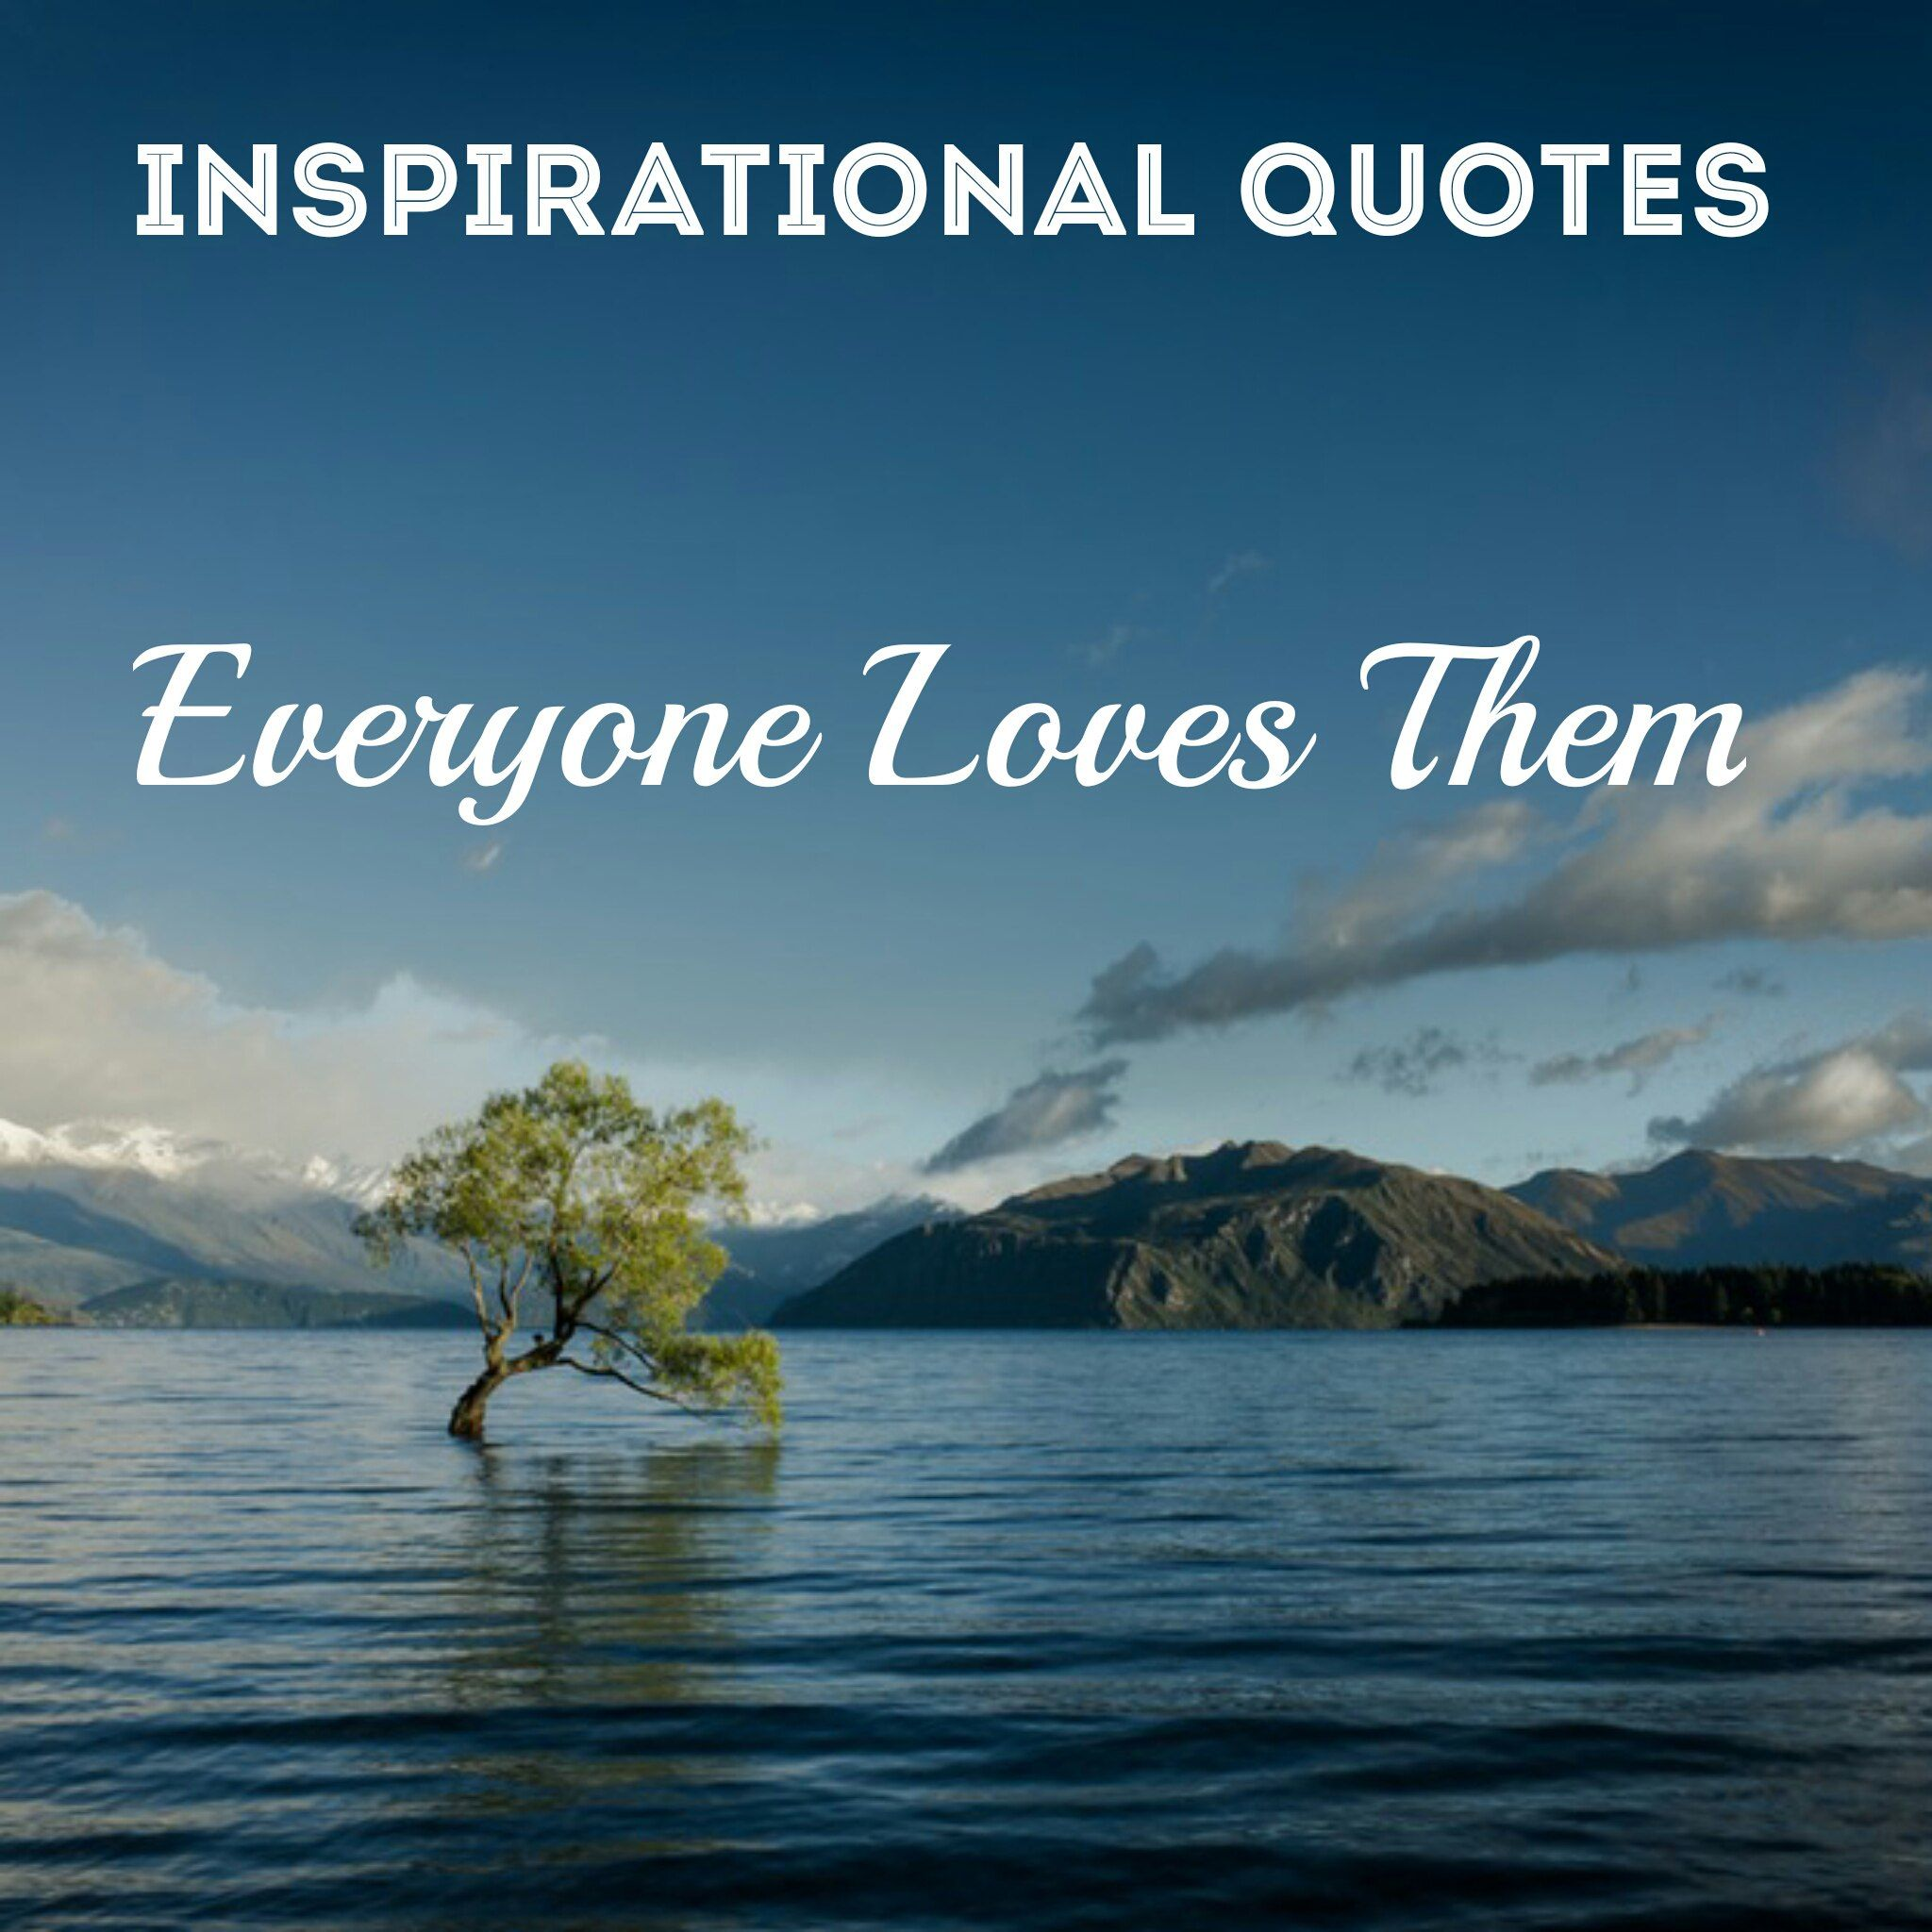 Motivational And Inspirational Quotes Sayings: 154 Best Inspirational Quotes & Sayings Of All Time